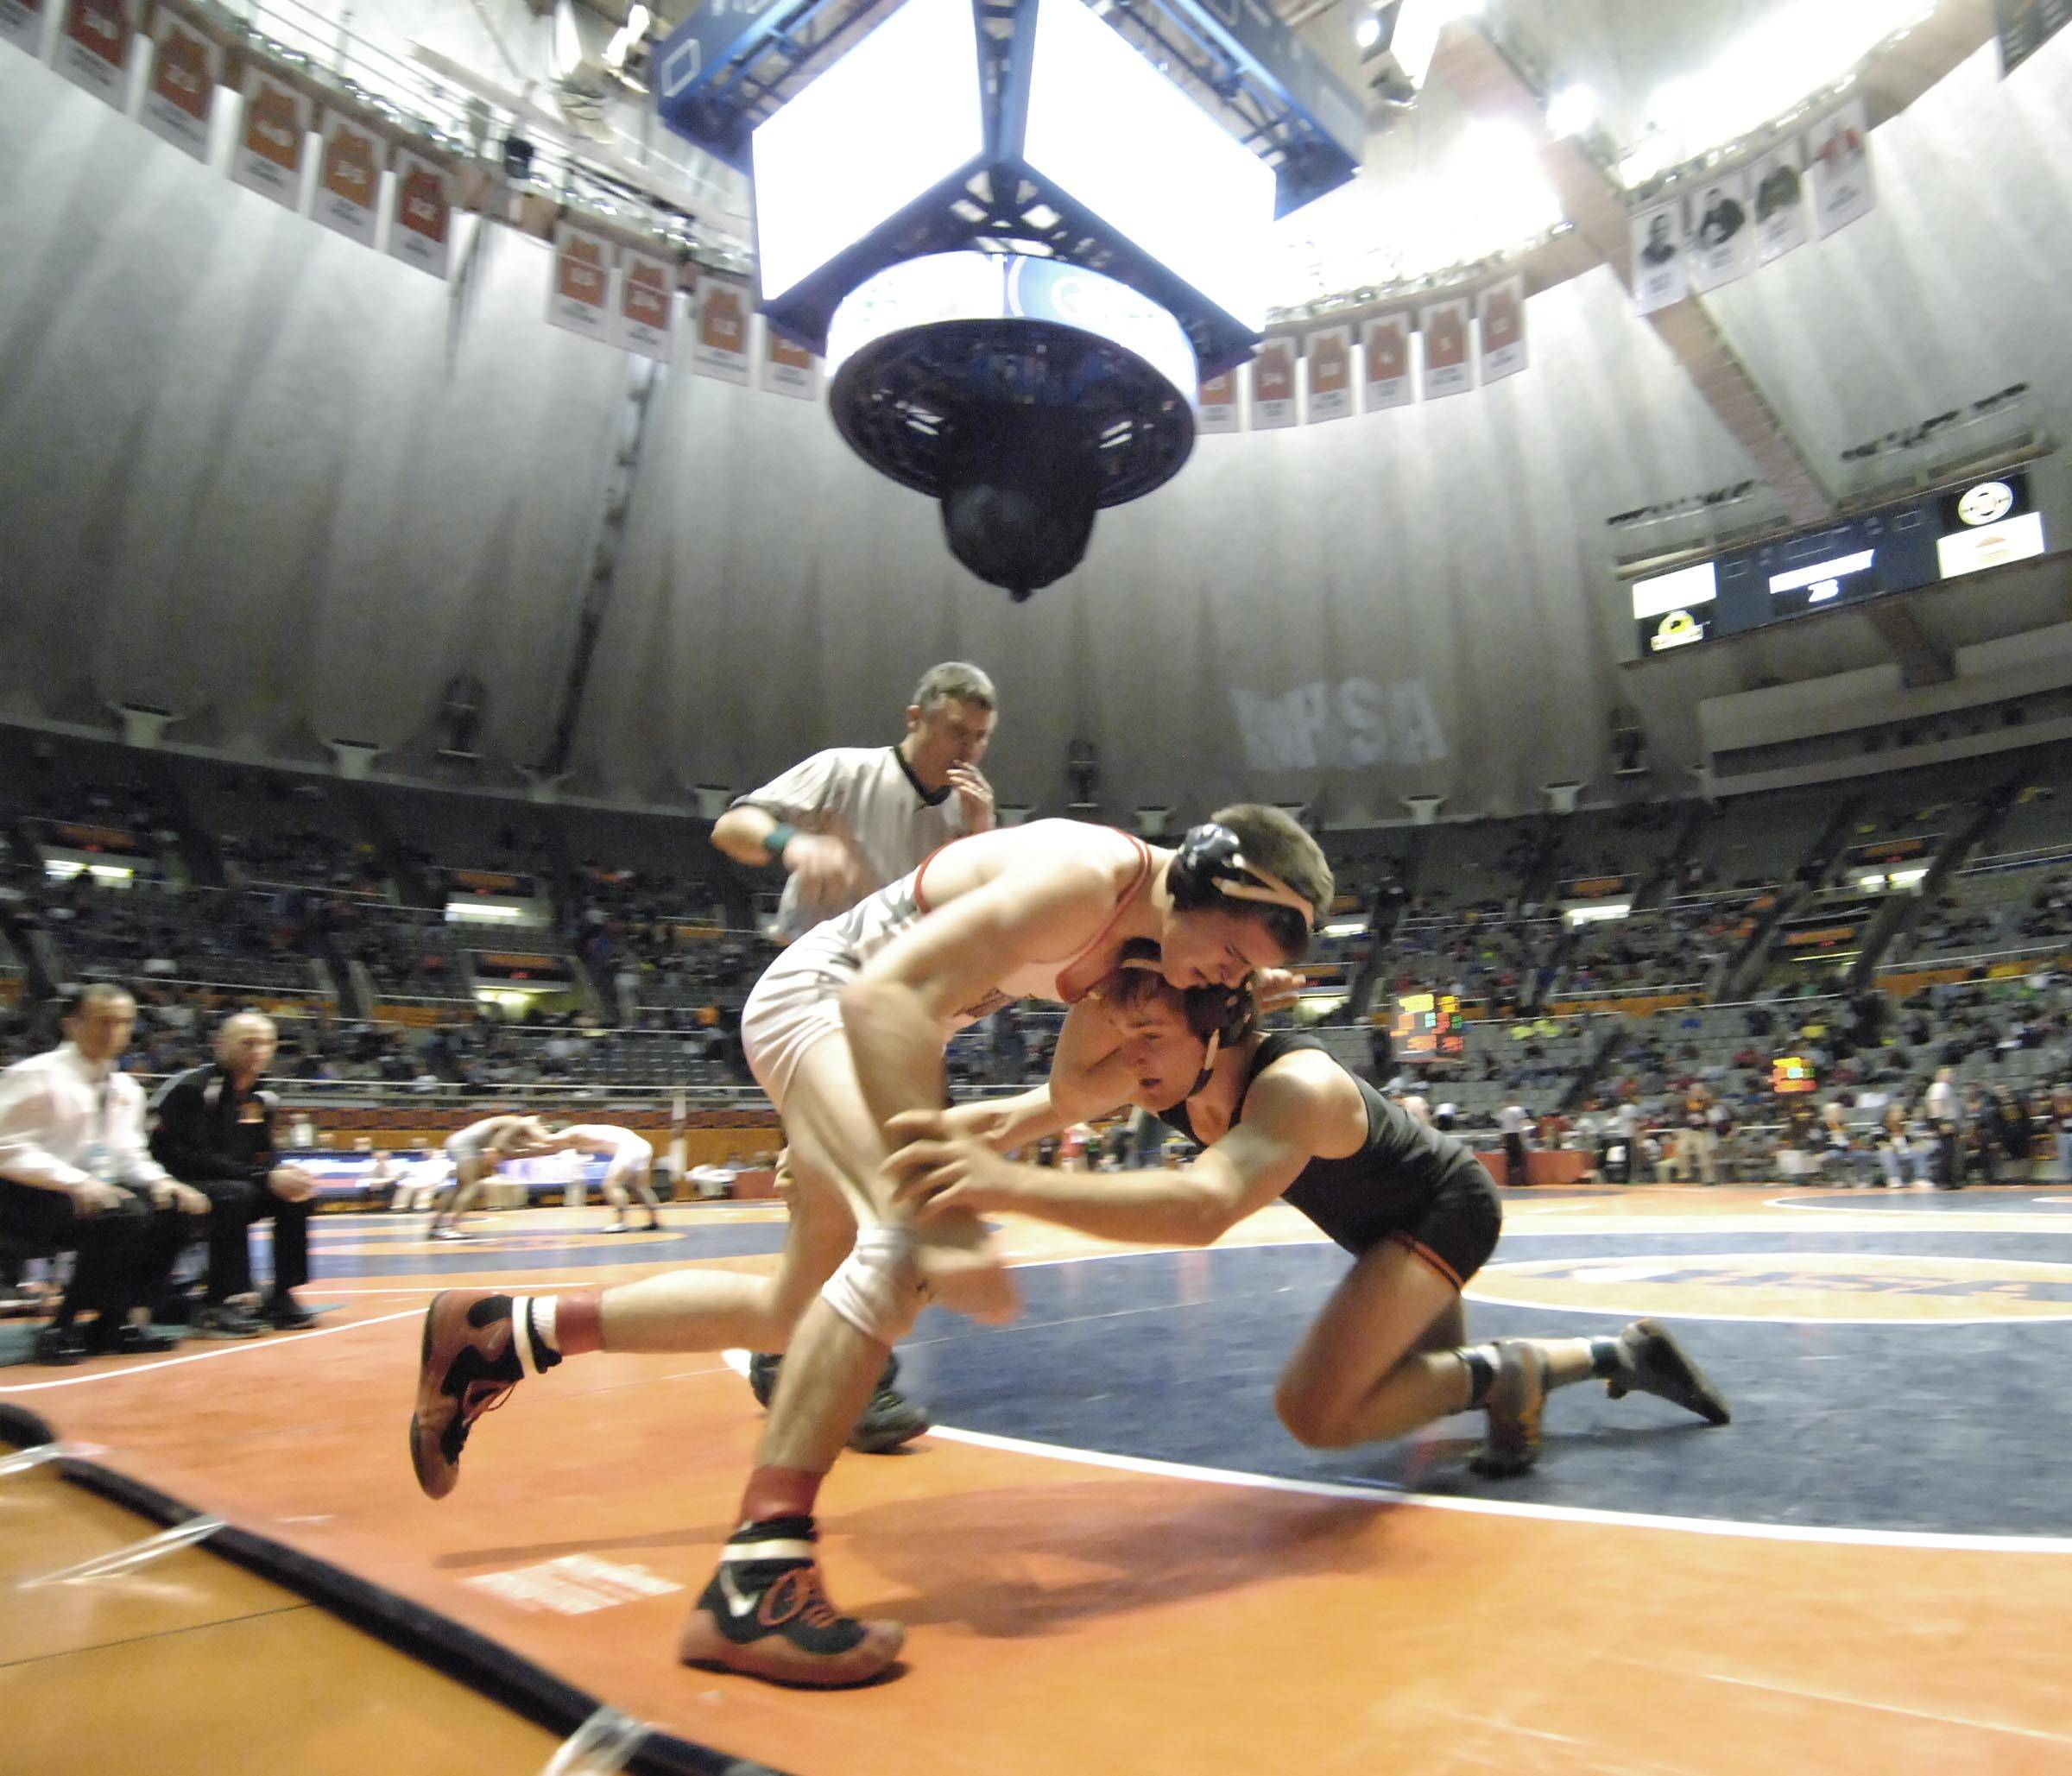 Kayne MacCallum of Libertyville High School competes against Bryce Gorman of Lincolnway Central High School Saturday in the 170-pound weight class third place match of the wrestling IHSA Class 3A state tournament at State Farm Center in Champaign.